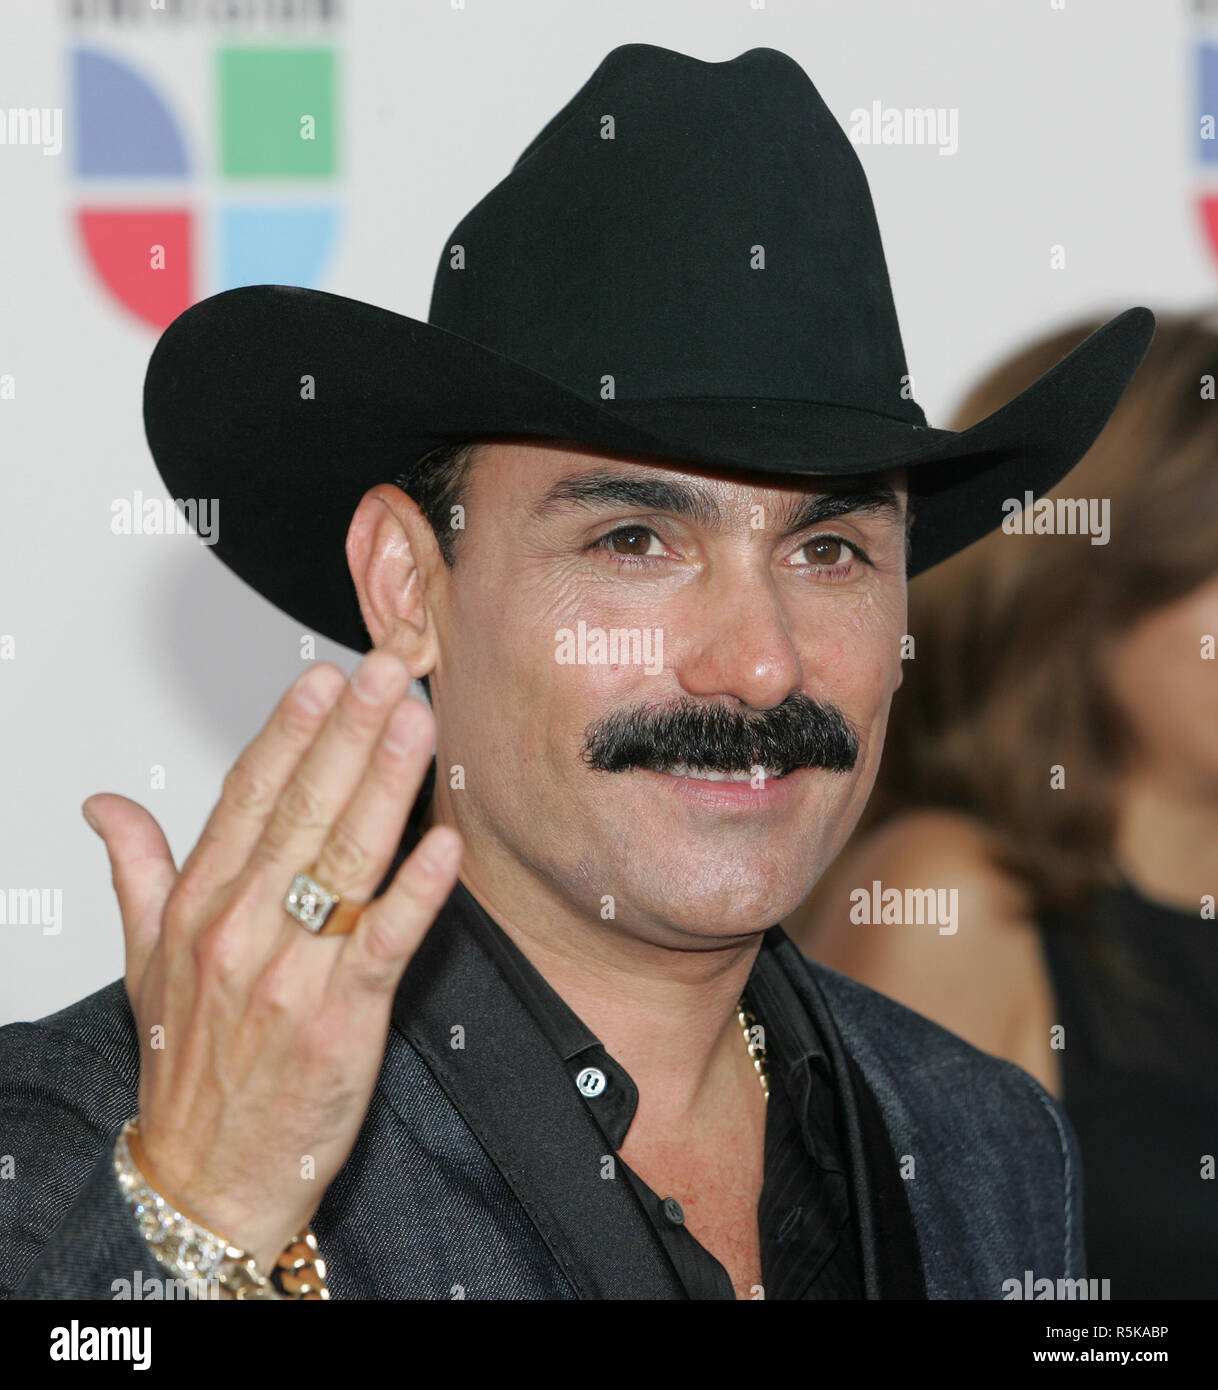 El Chapo De Sinaloa High Resolution Stock Photography and Images - Alamy